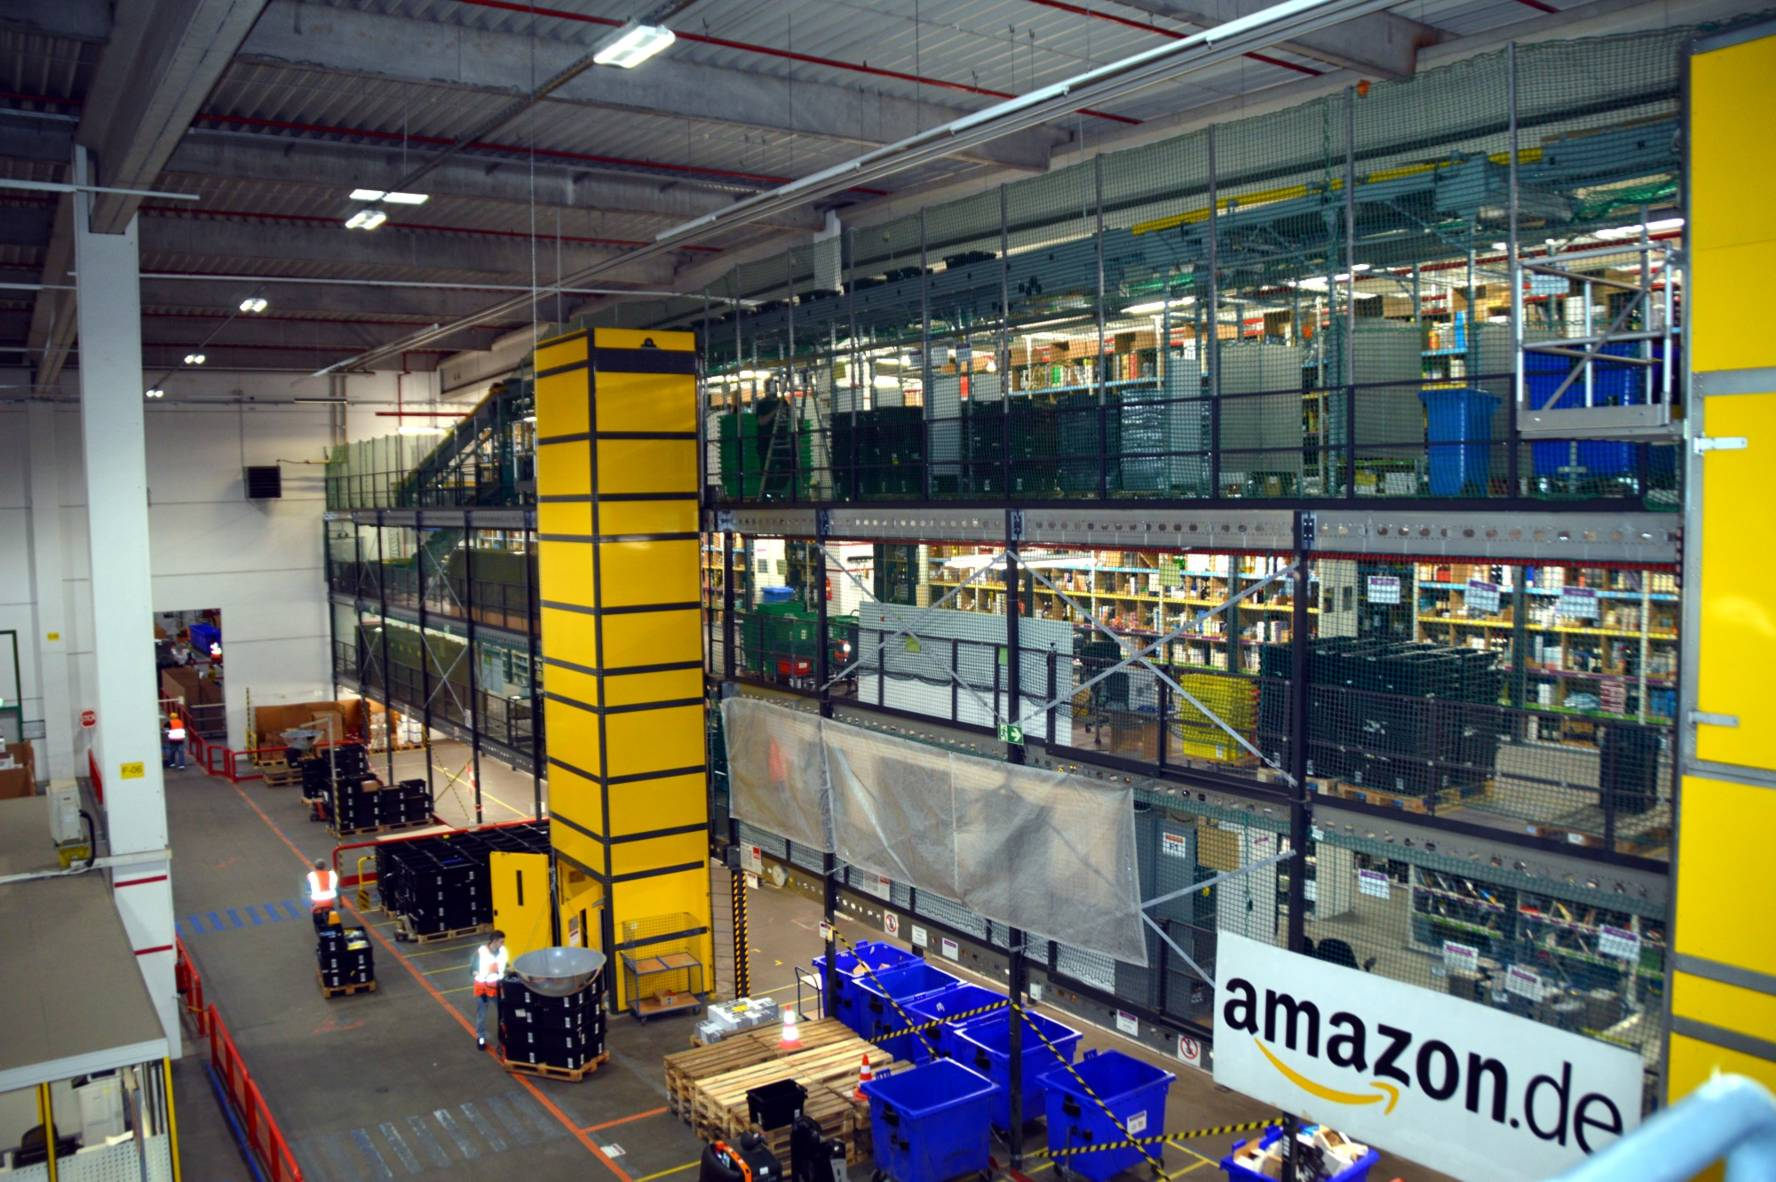 Amazon Logistik FRA 1 in Bad Hersfeld